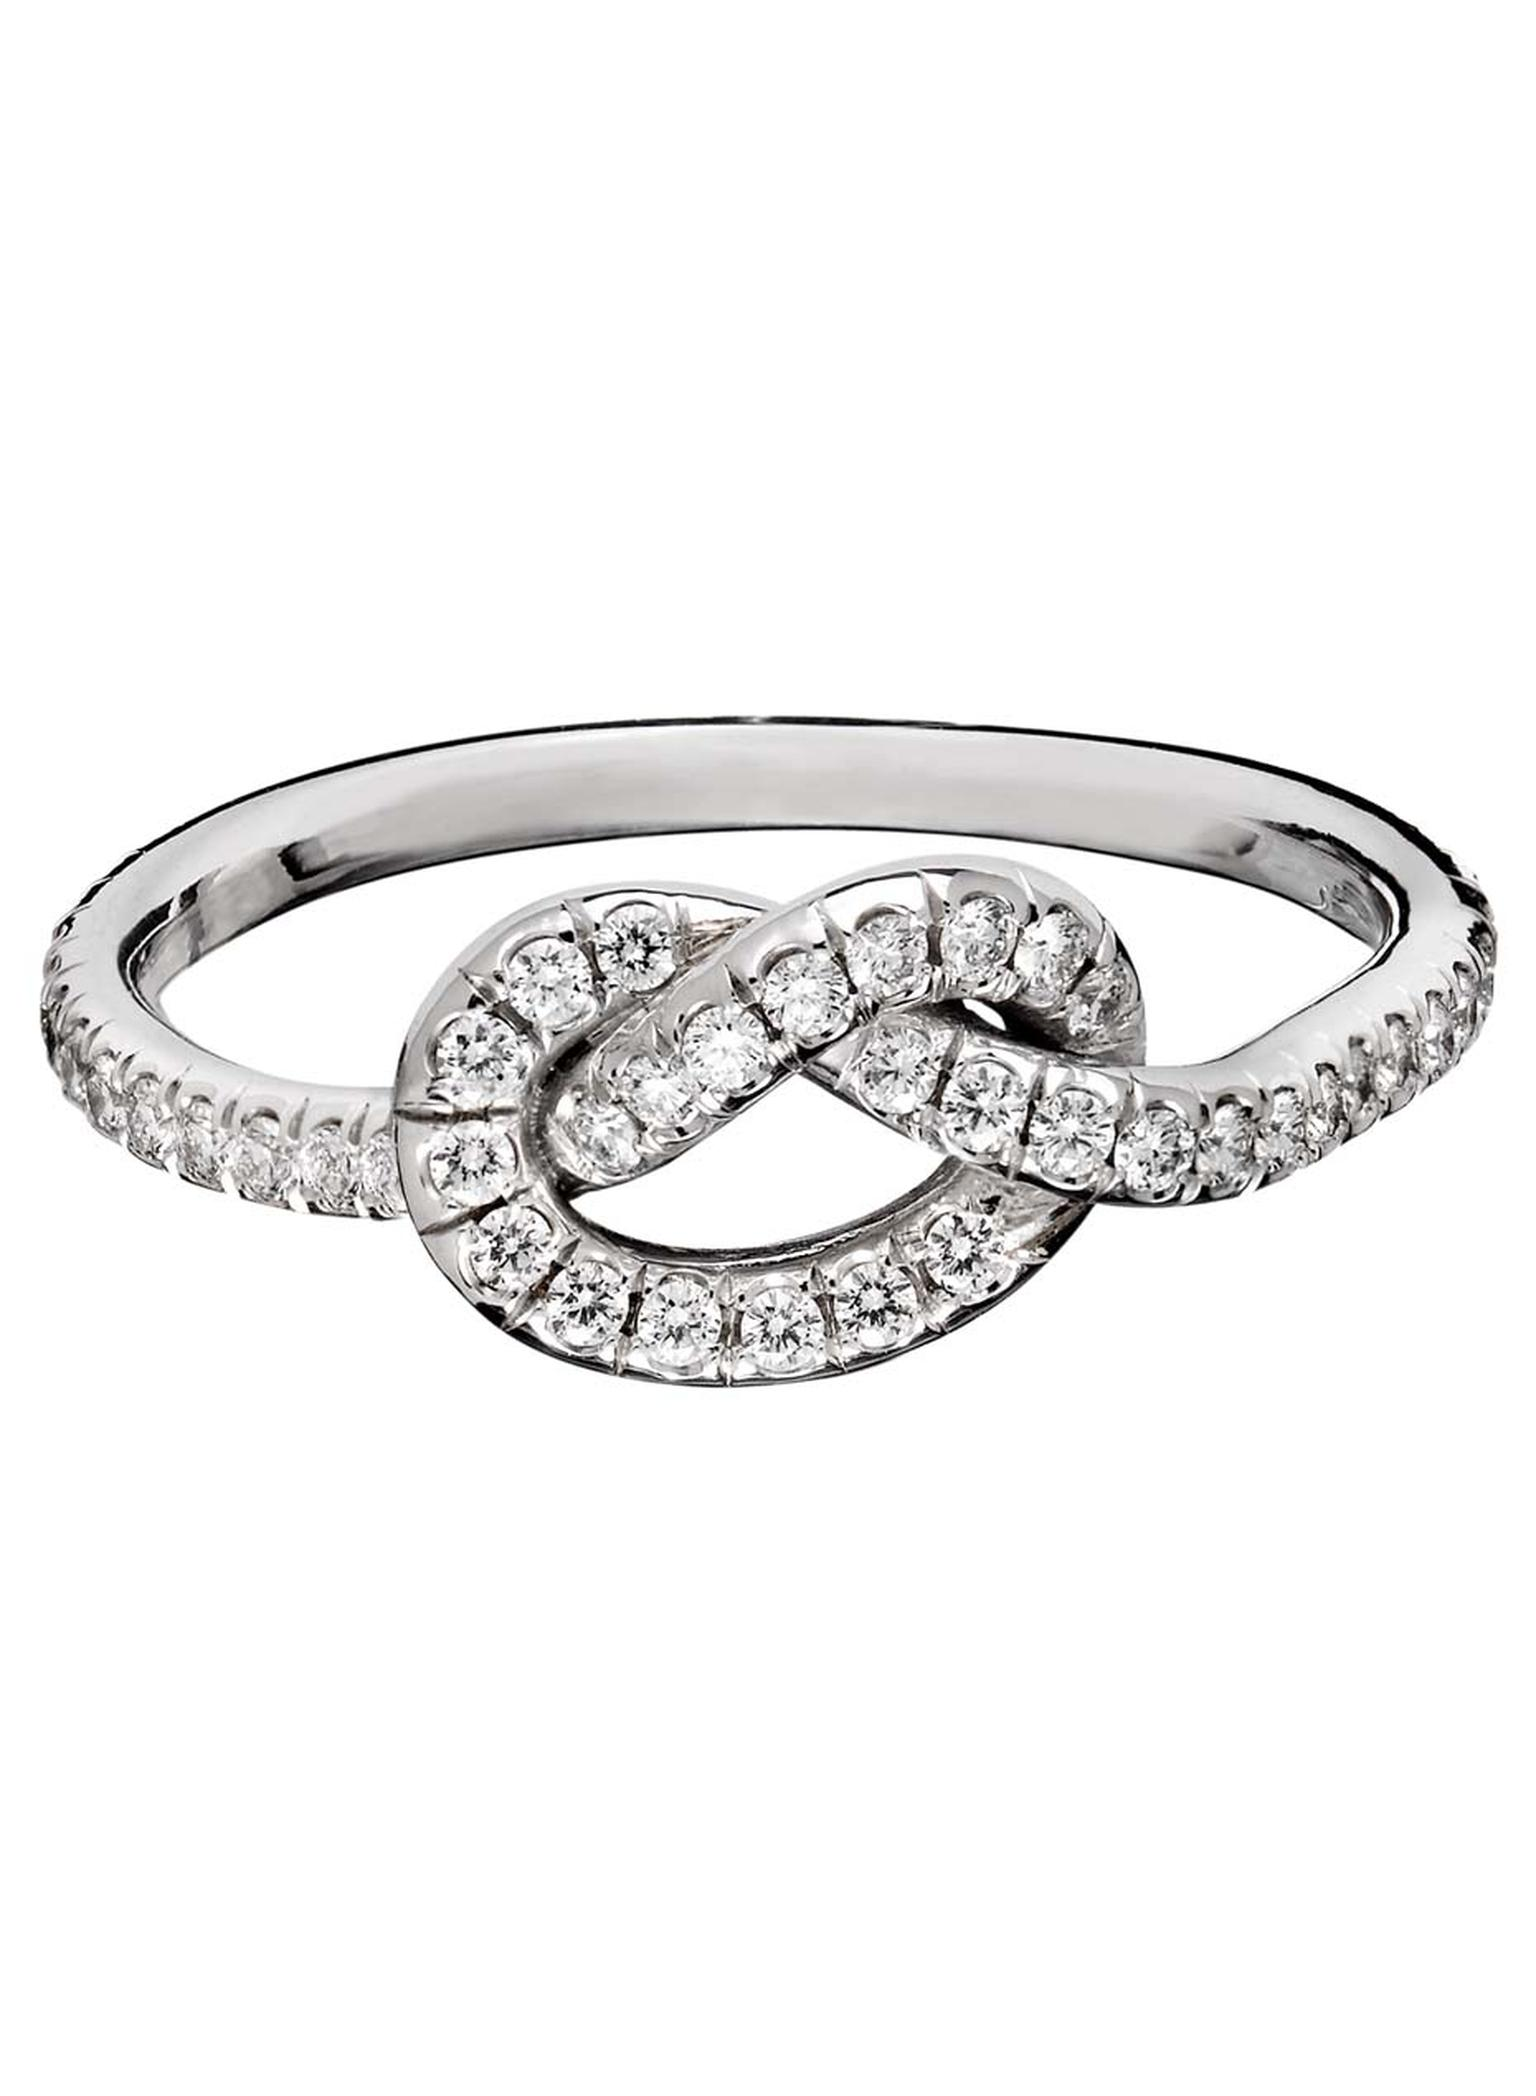 This is the large version of the signature Love Knot ring in white gold, set with 0.57ct of pavé diamonds from Finn Jewelry.